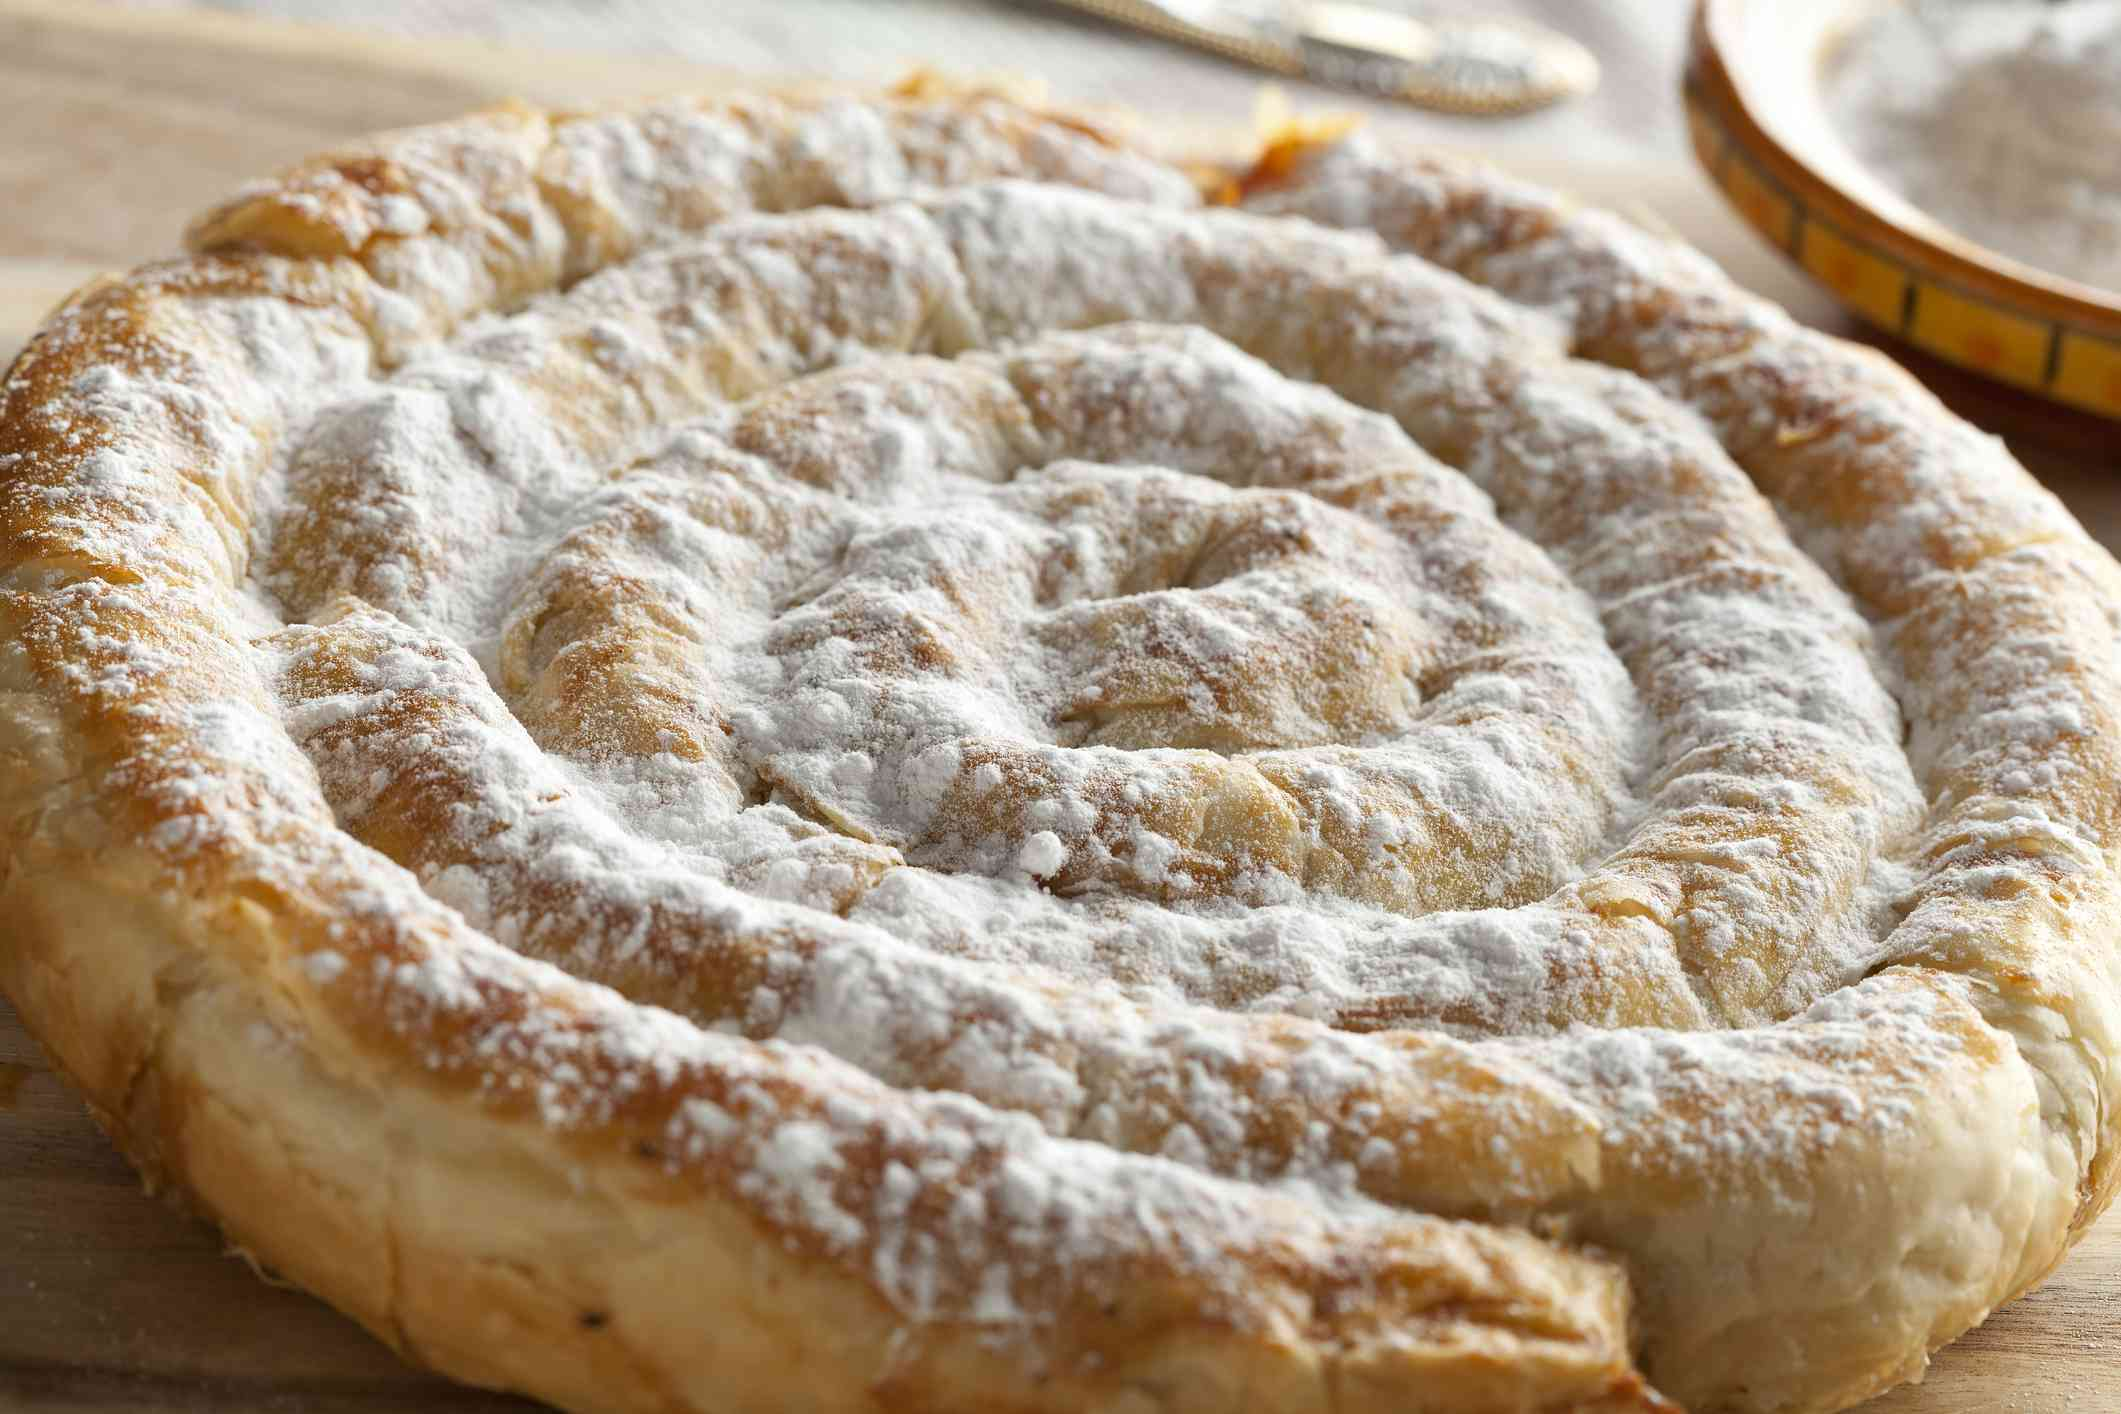 Moroccan almond snake pastry